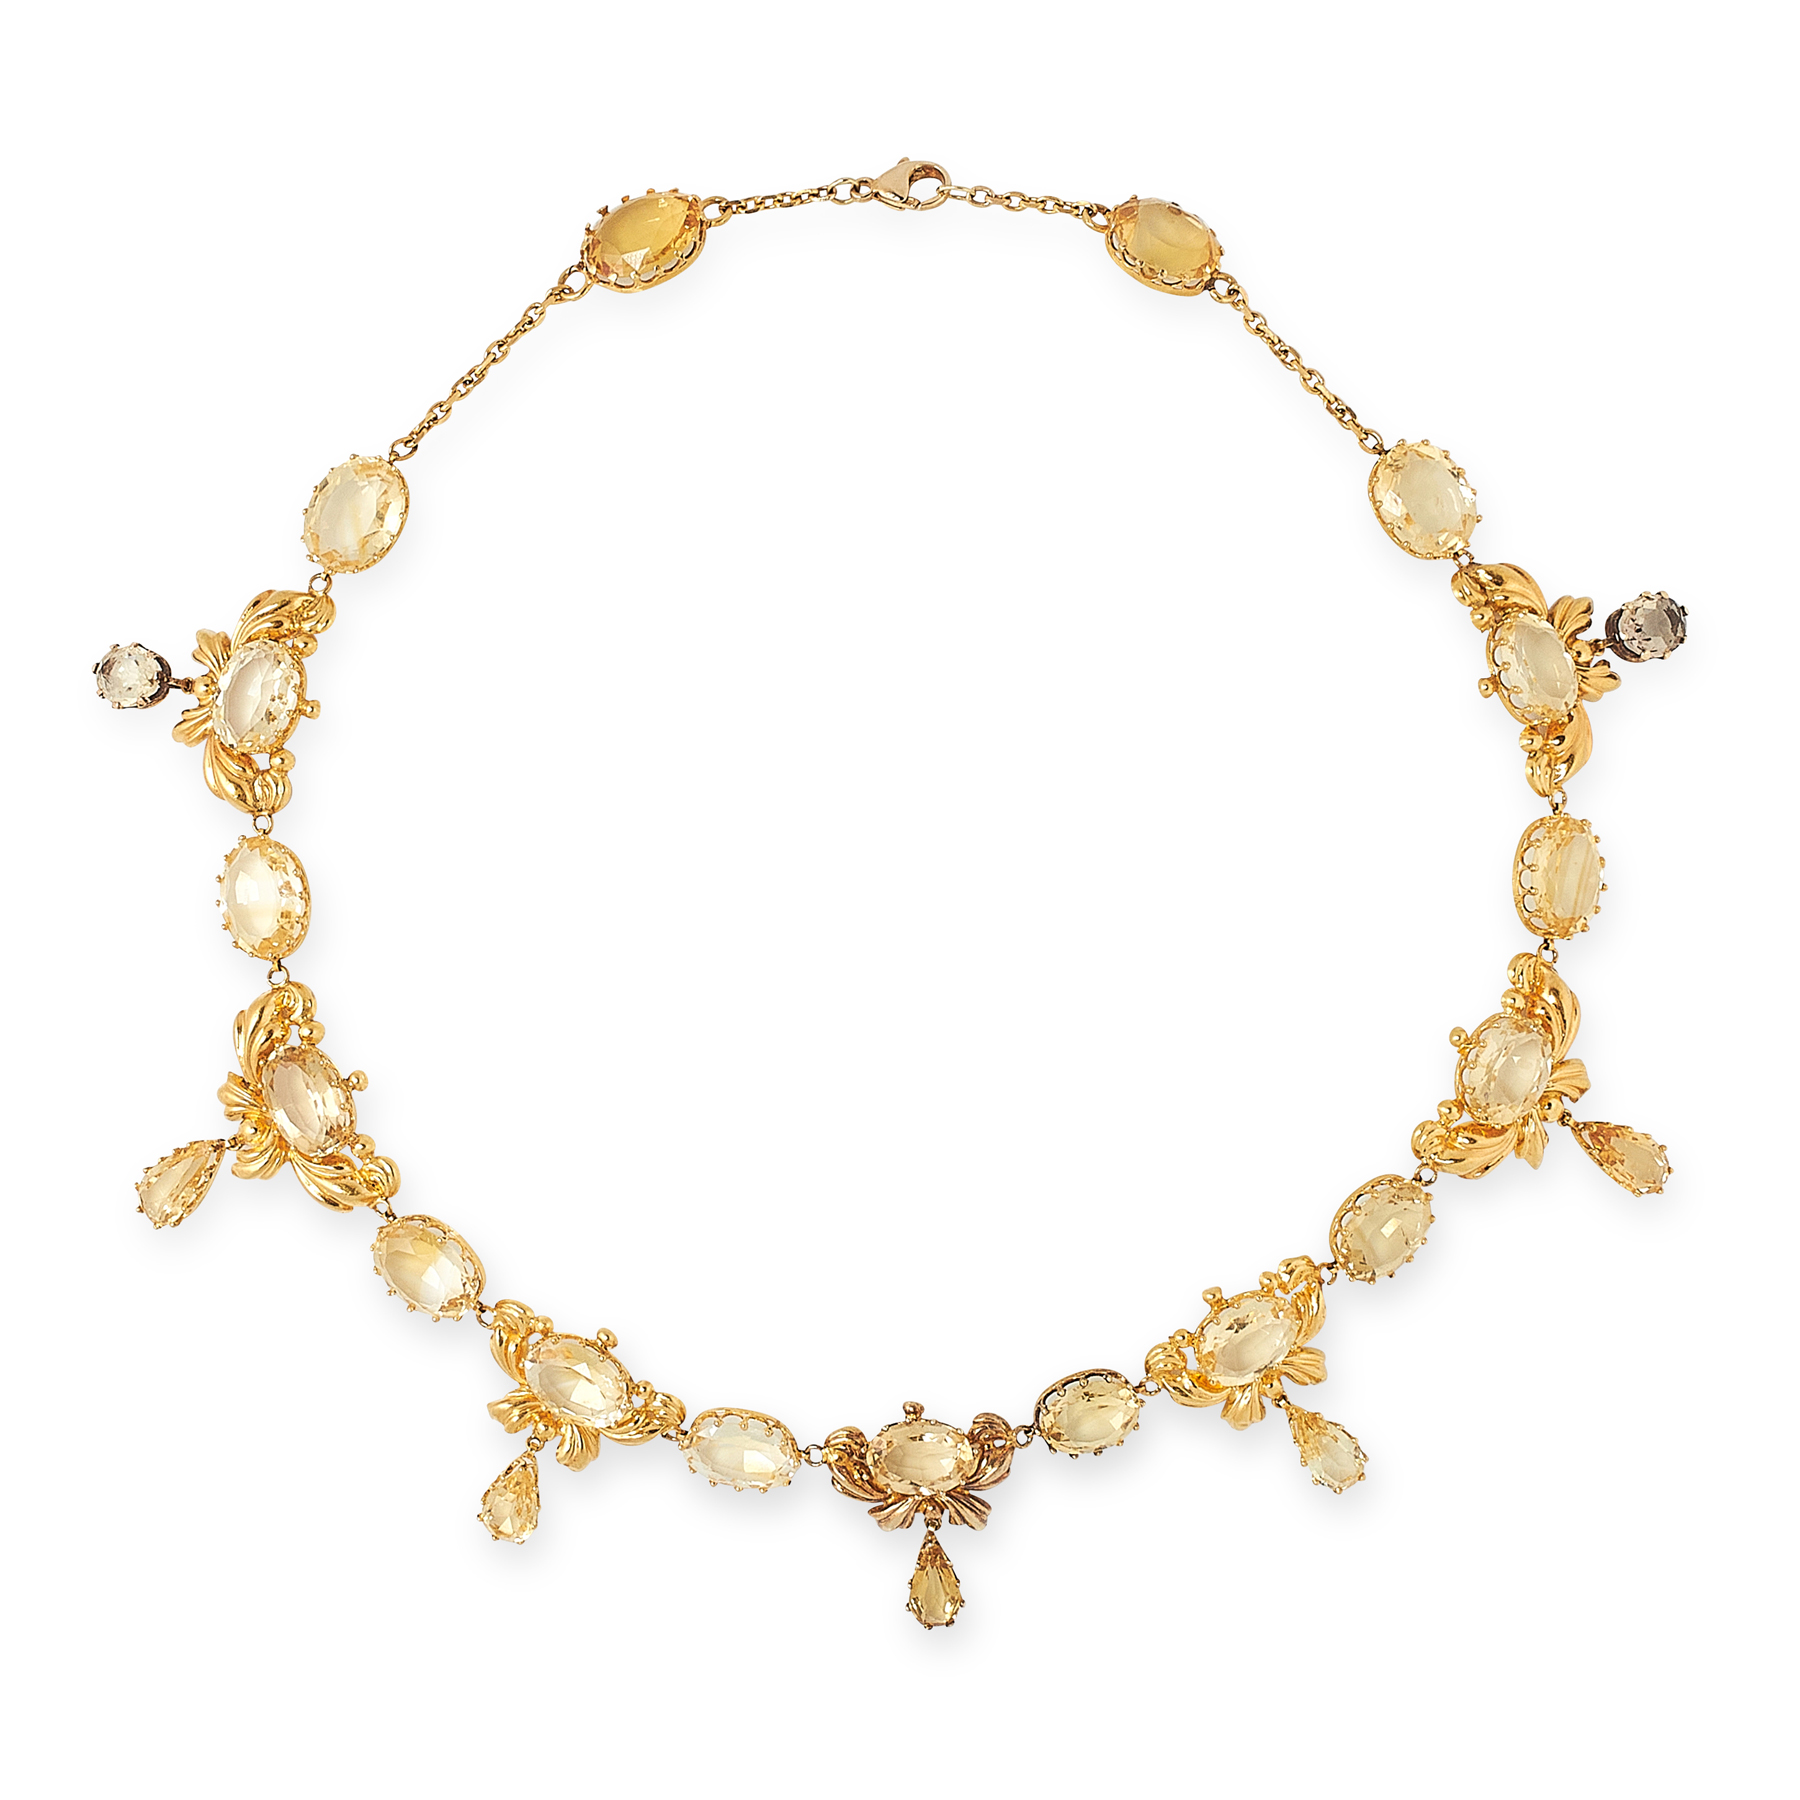 AN ANTIQUE CITRINE NECKLACE in high carat yellow gold, comprising a row of oval cut citrines